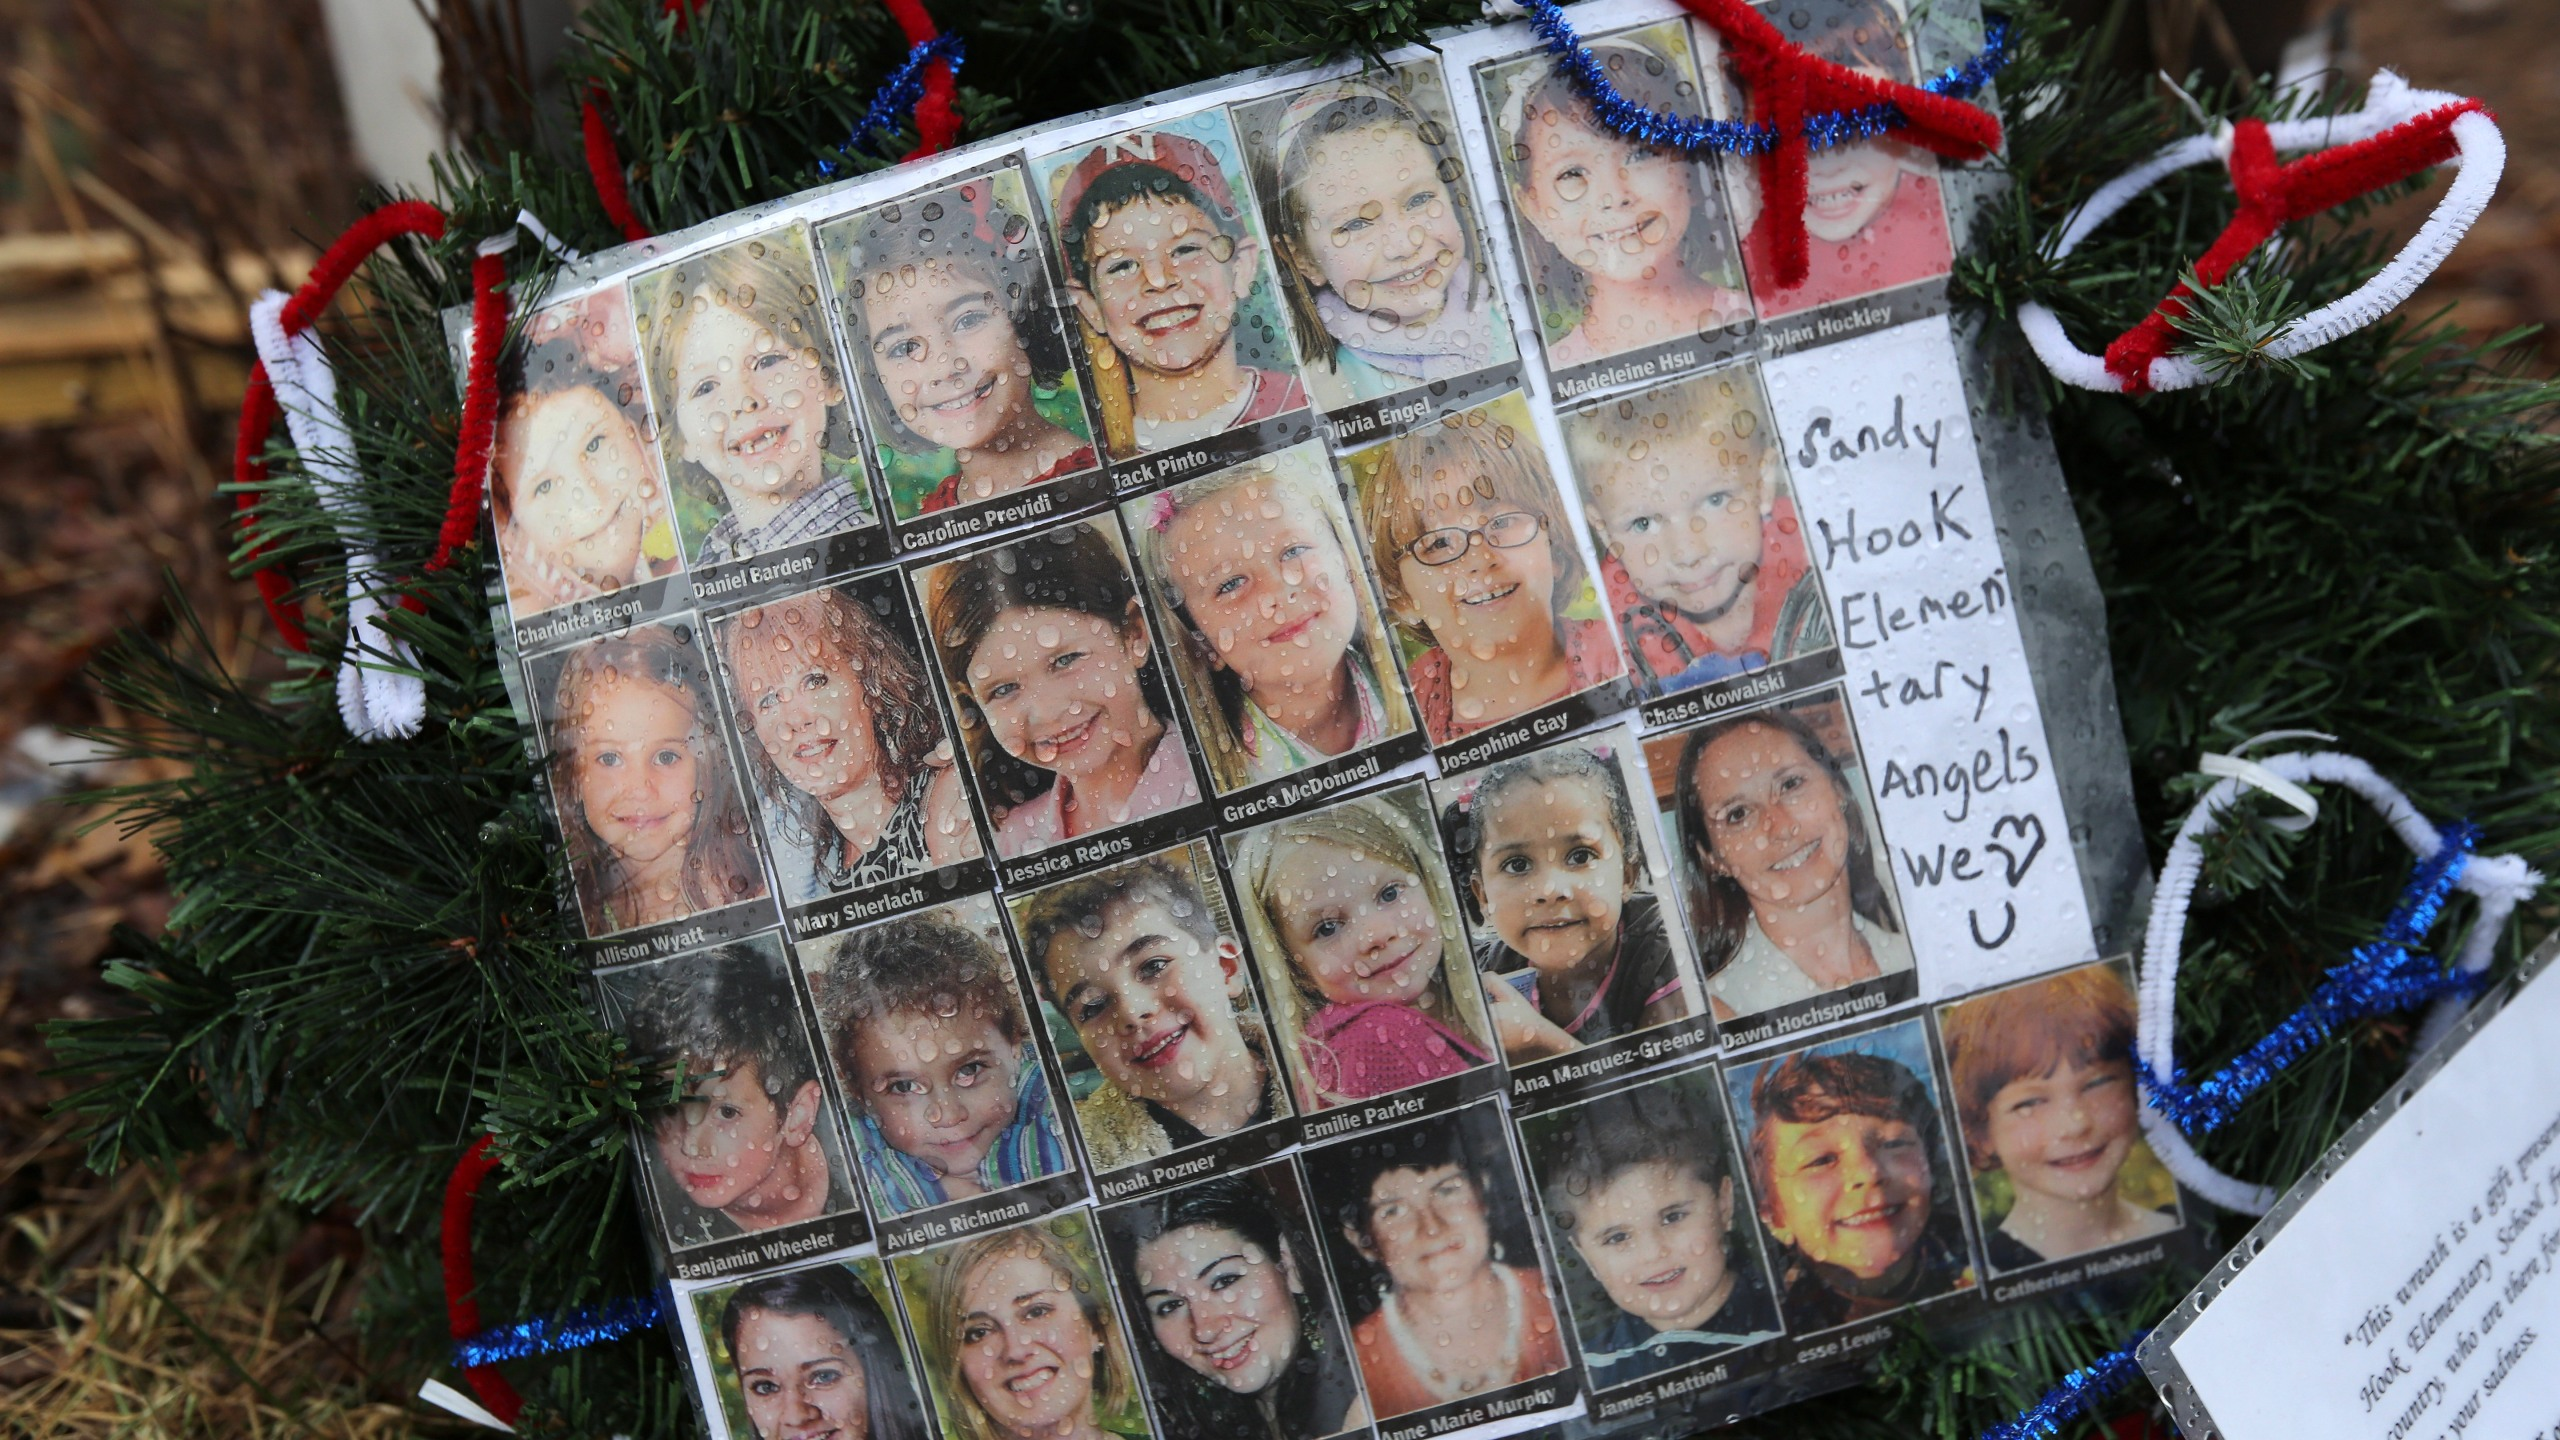 Photos of Sandy Hook Elementary School massacre victims sits at a small memorial near the school on Monday, Jan. 14, 2013, in Newtown, Connecticut. (Credit: John Moore/Getty Images)